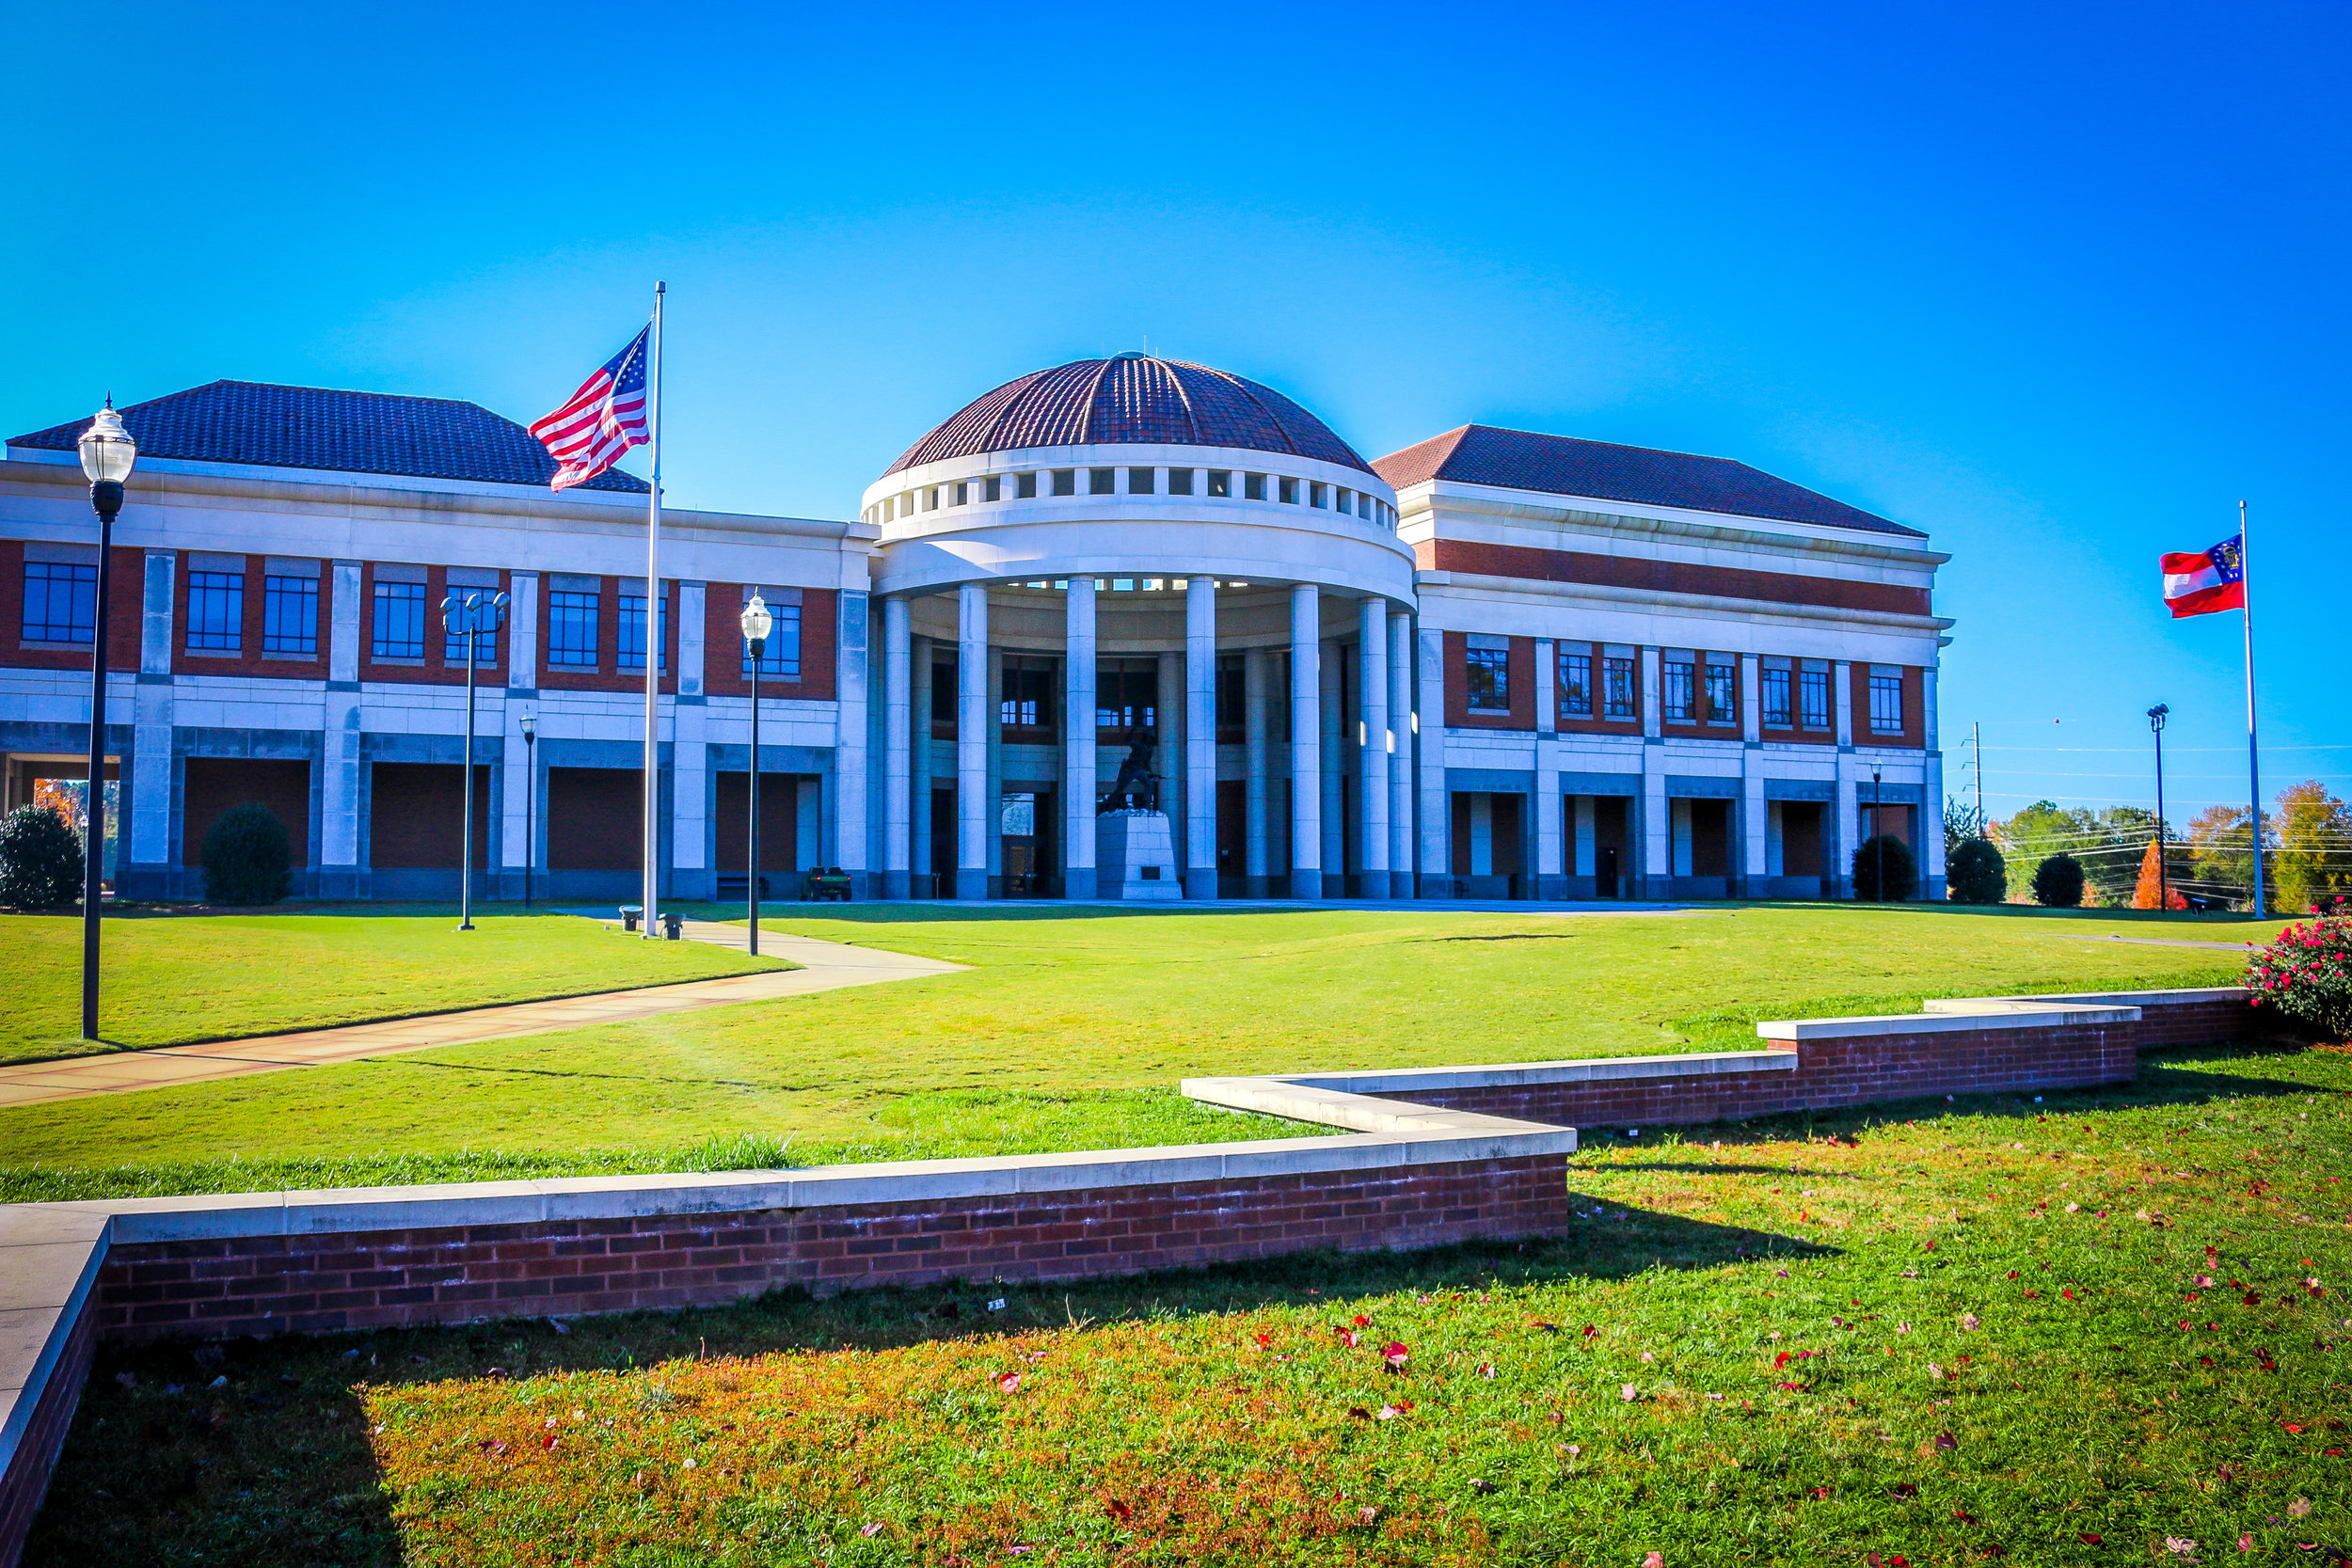 National Infantry Museum at Fort Benning